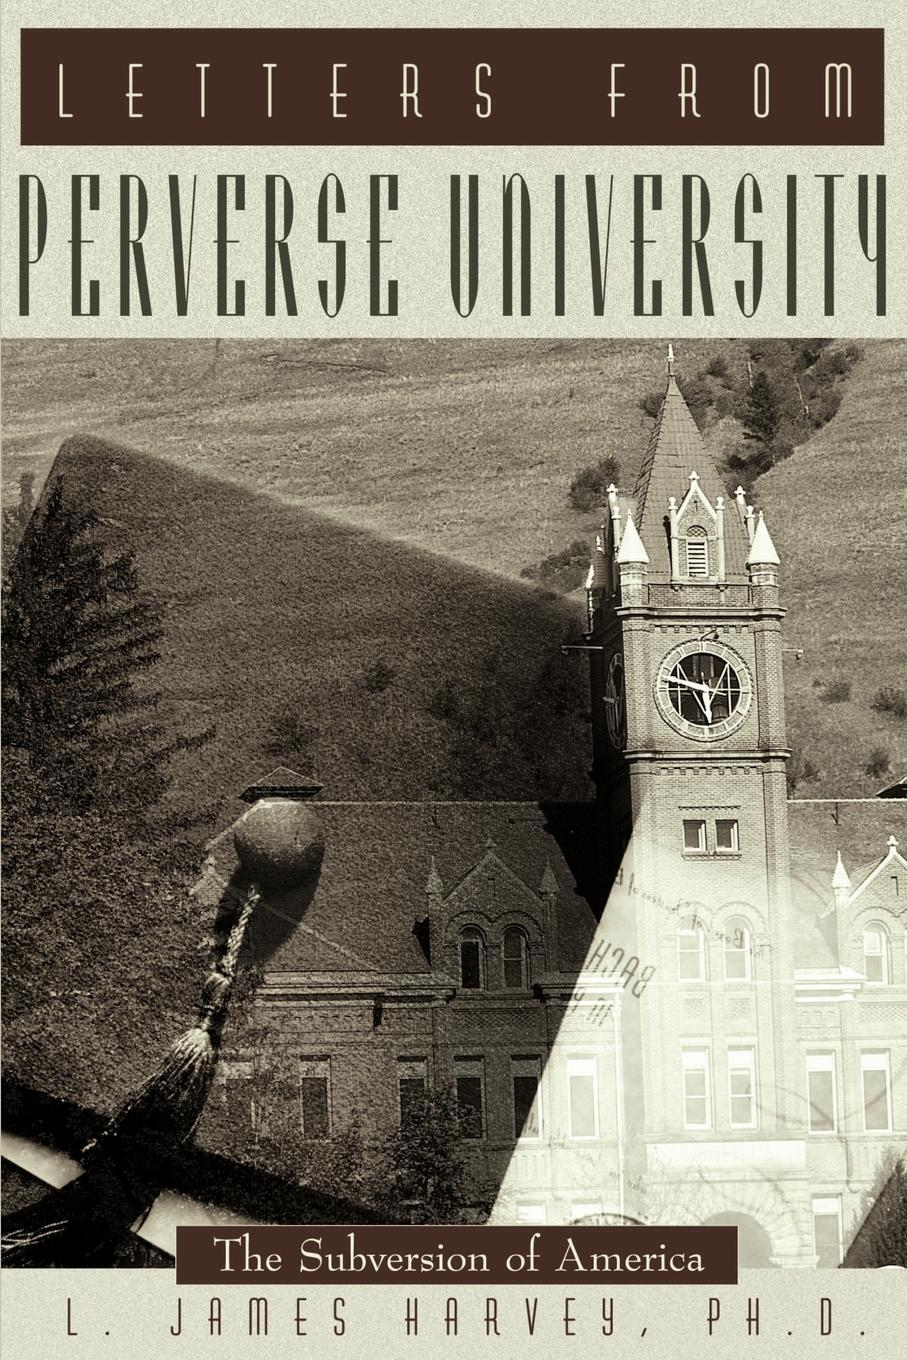 Letters from Perverse University. The Subversion of America